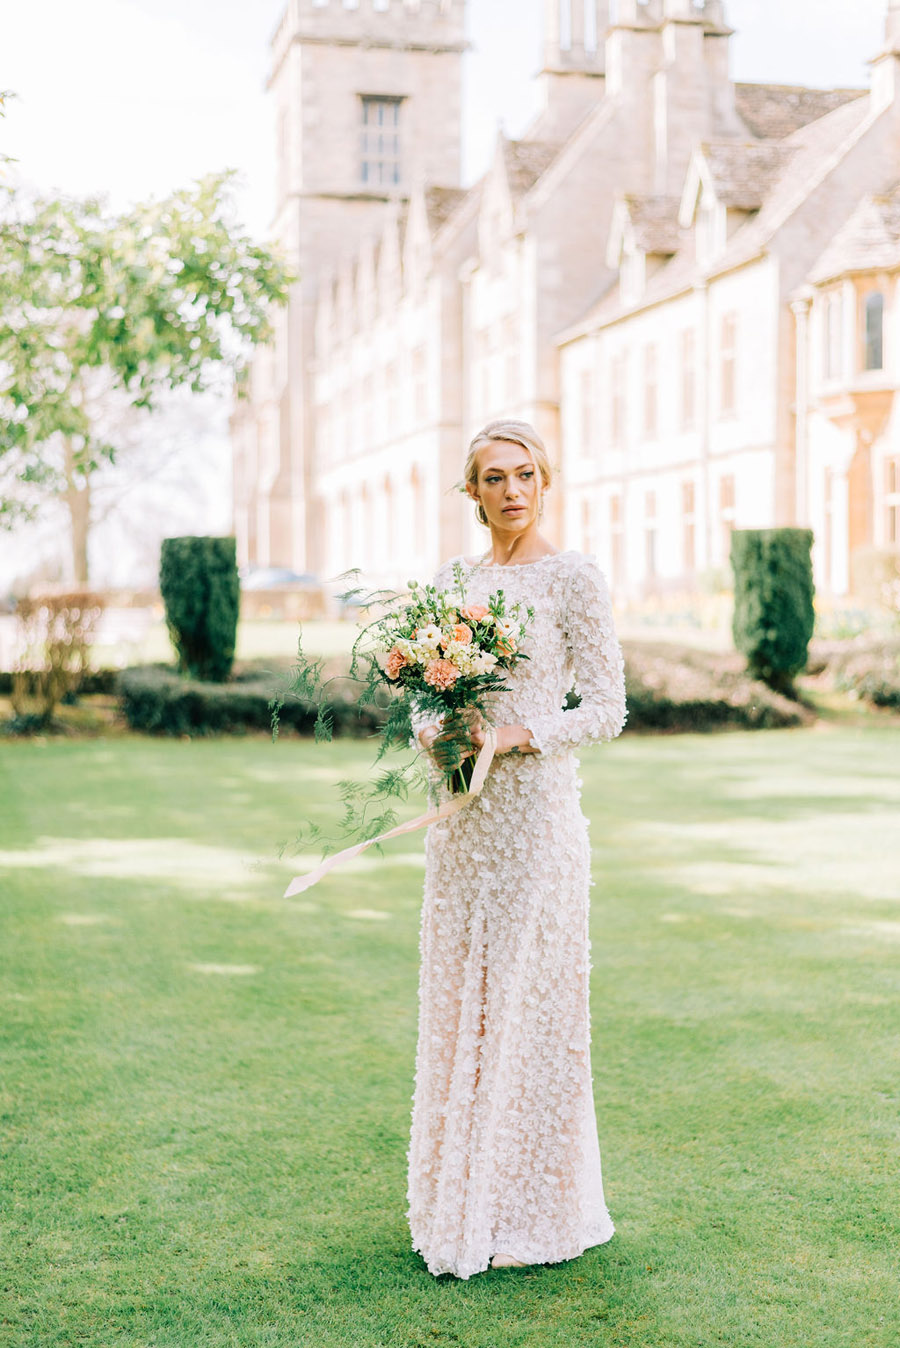 coral and neutral colour palette for a stunning wedding look with Corky and Prince, image credit Rachel Jane Photography (4)